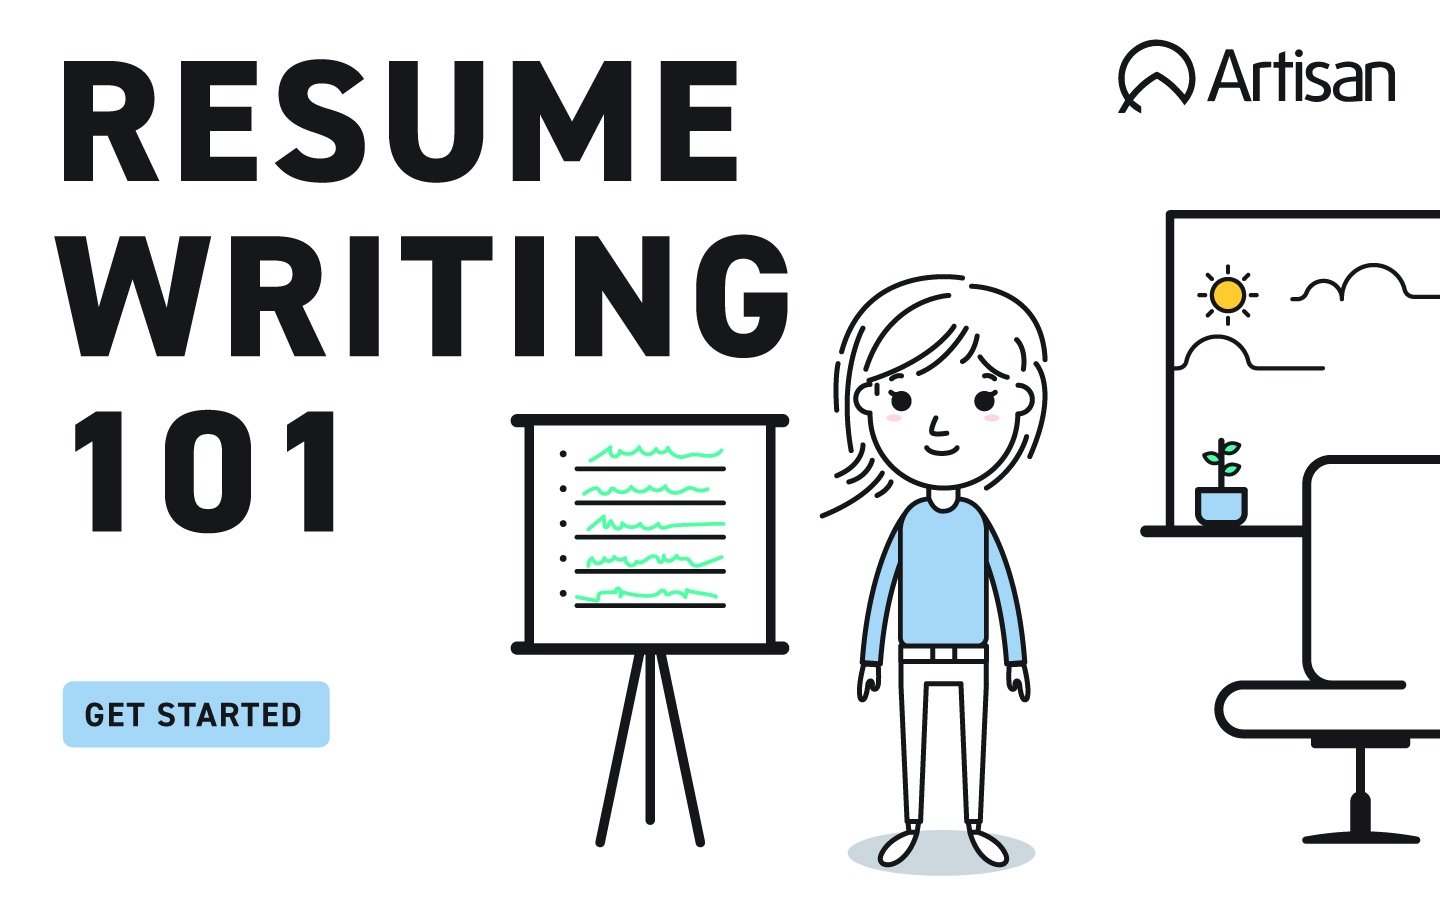 Resume Writing 101 Tips.jpg